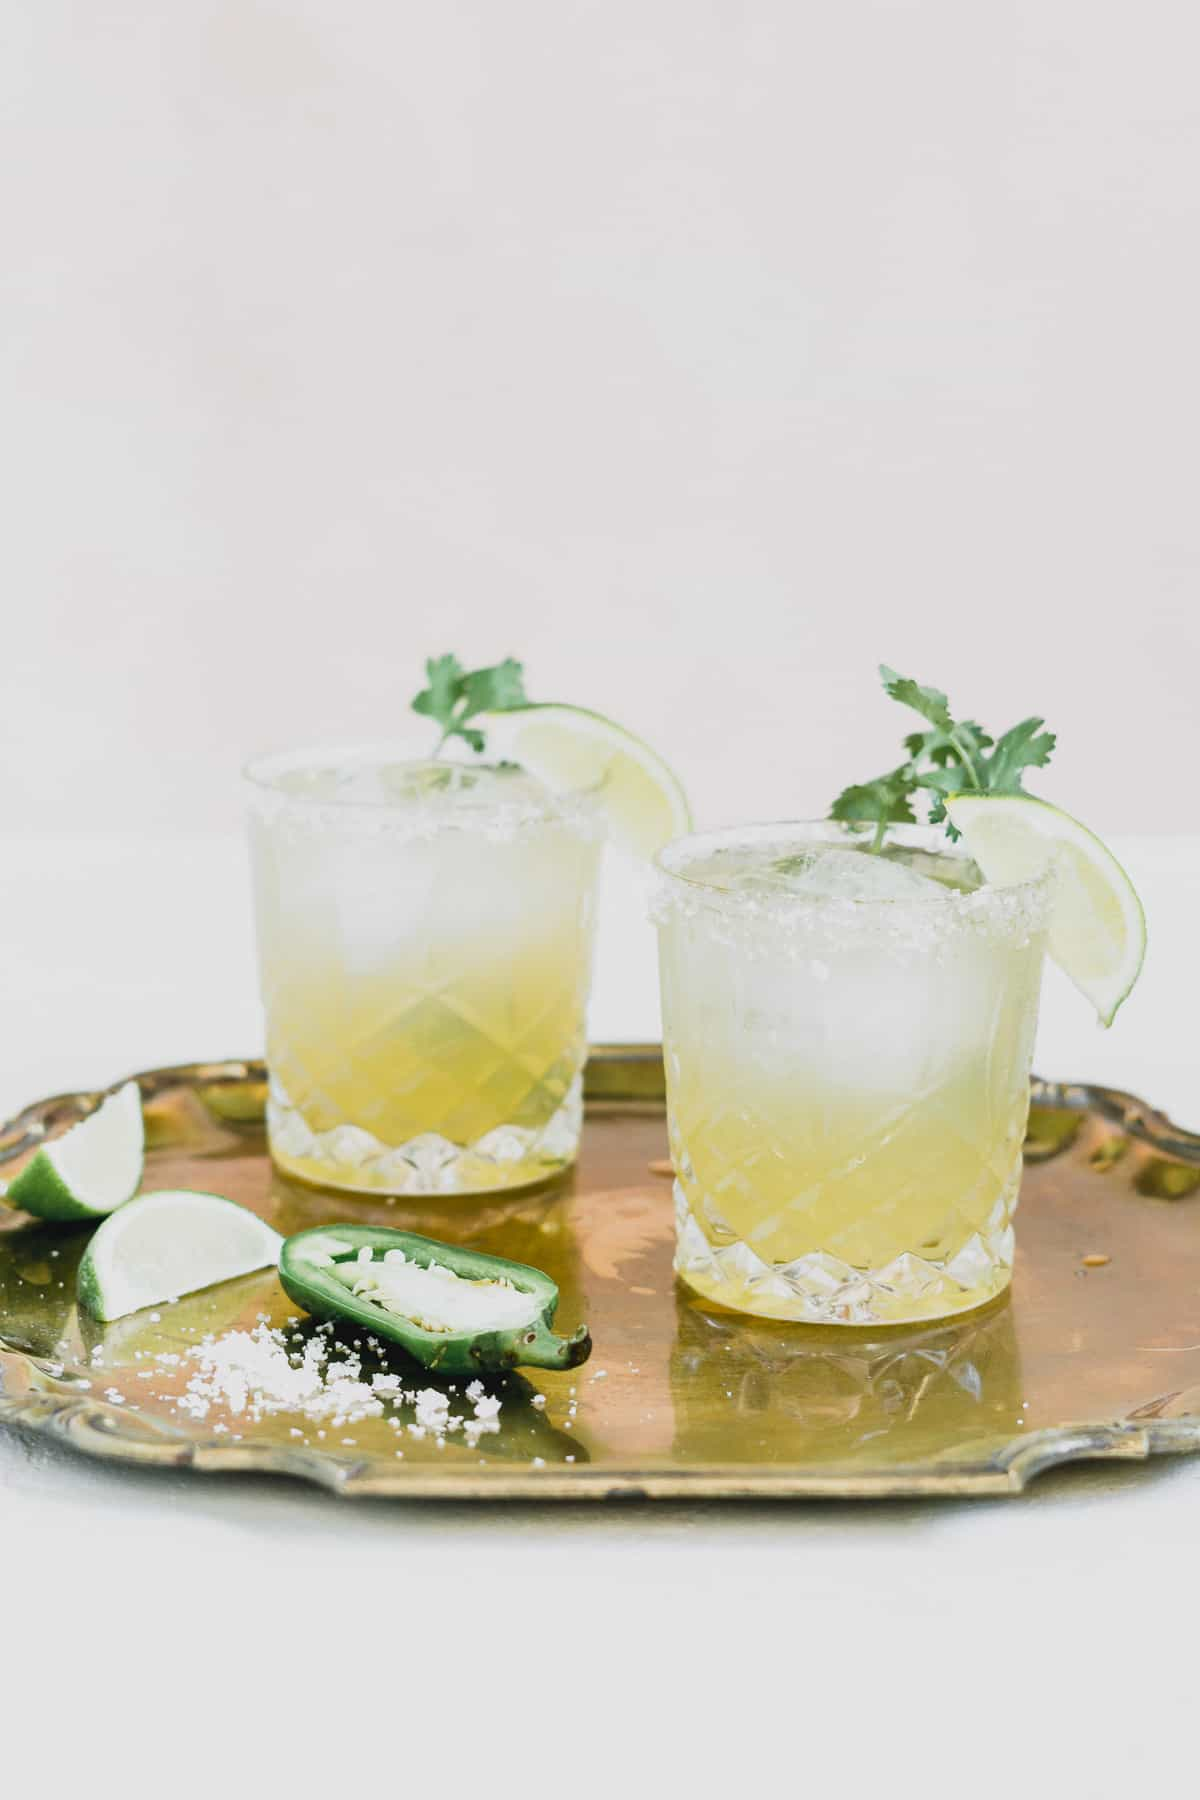 Two margaritas on a gold platter with lime wedges and cilantro.